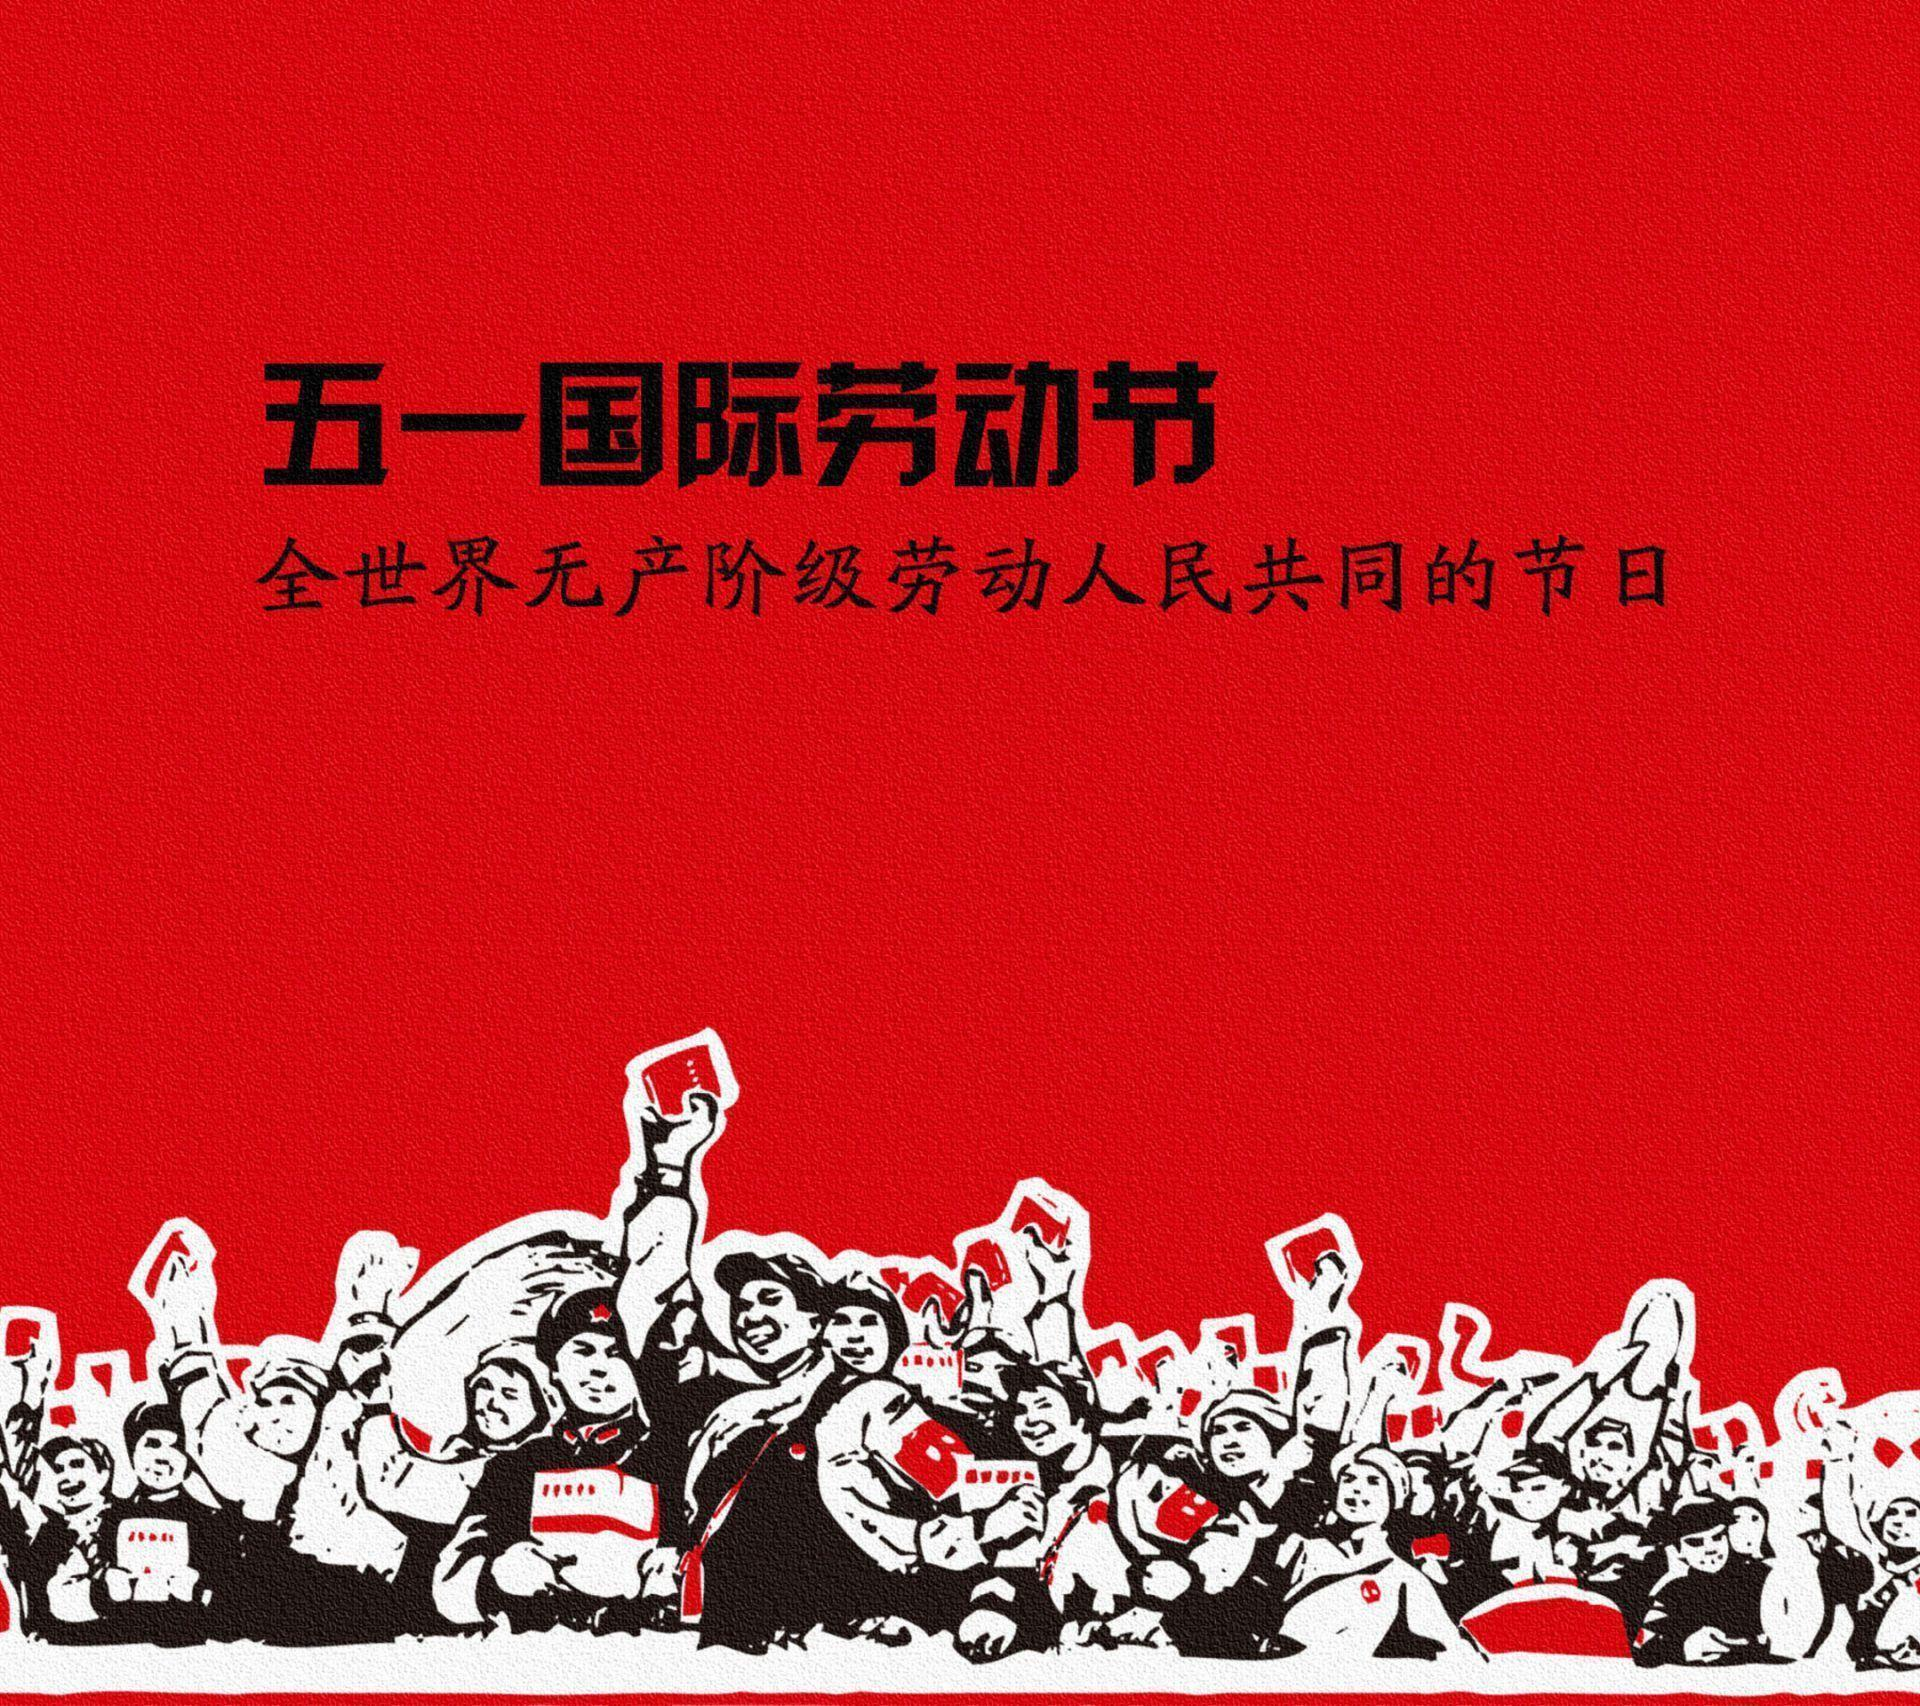 Labor day in china wide screen modern wallpaper 292014110829 ...